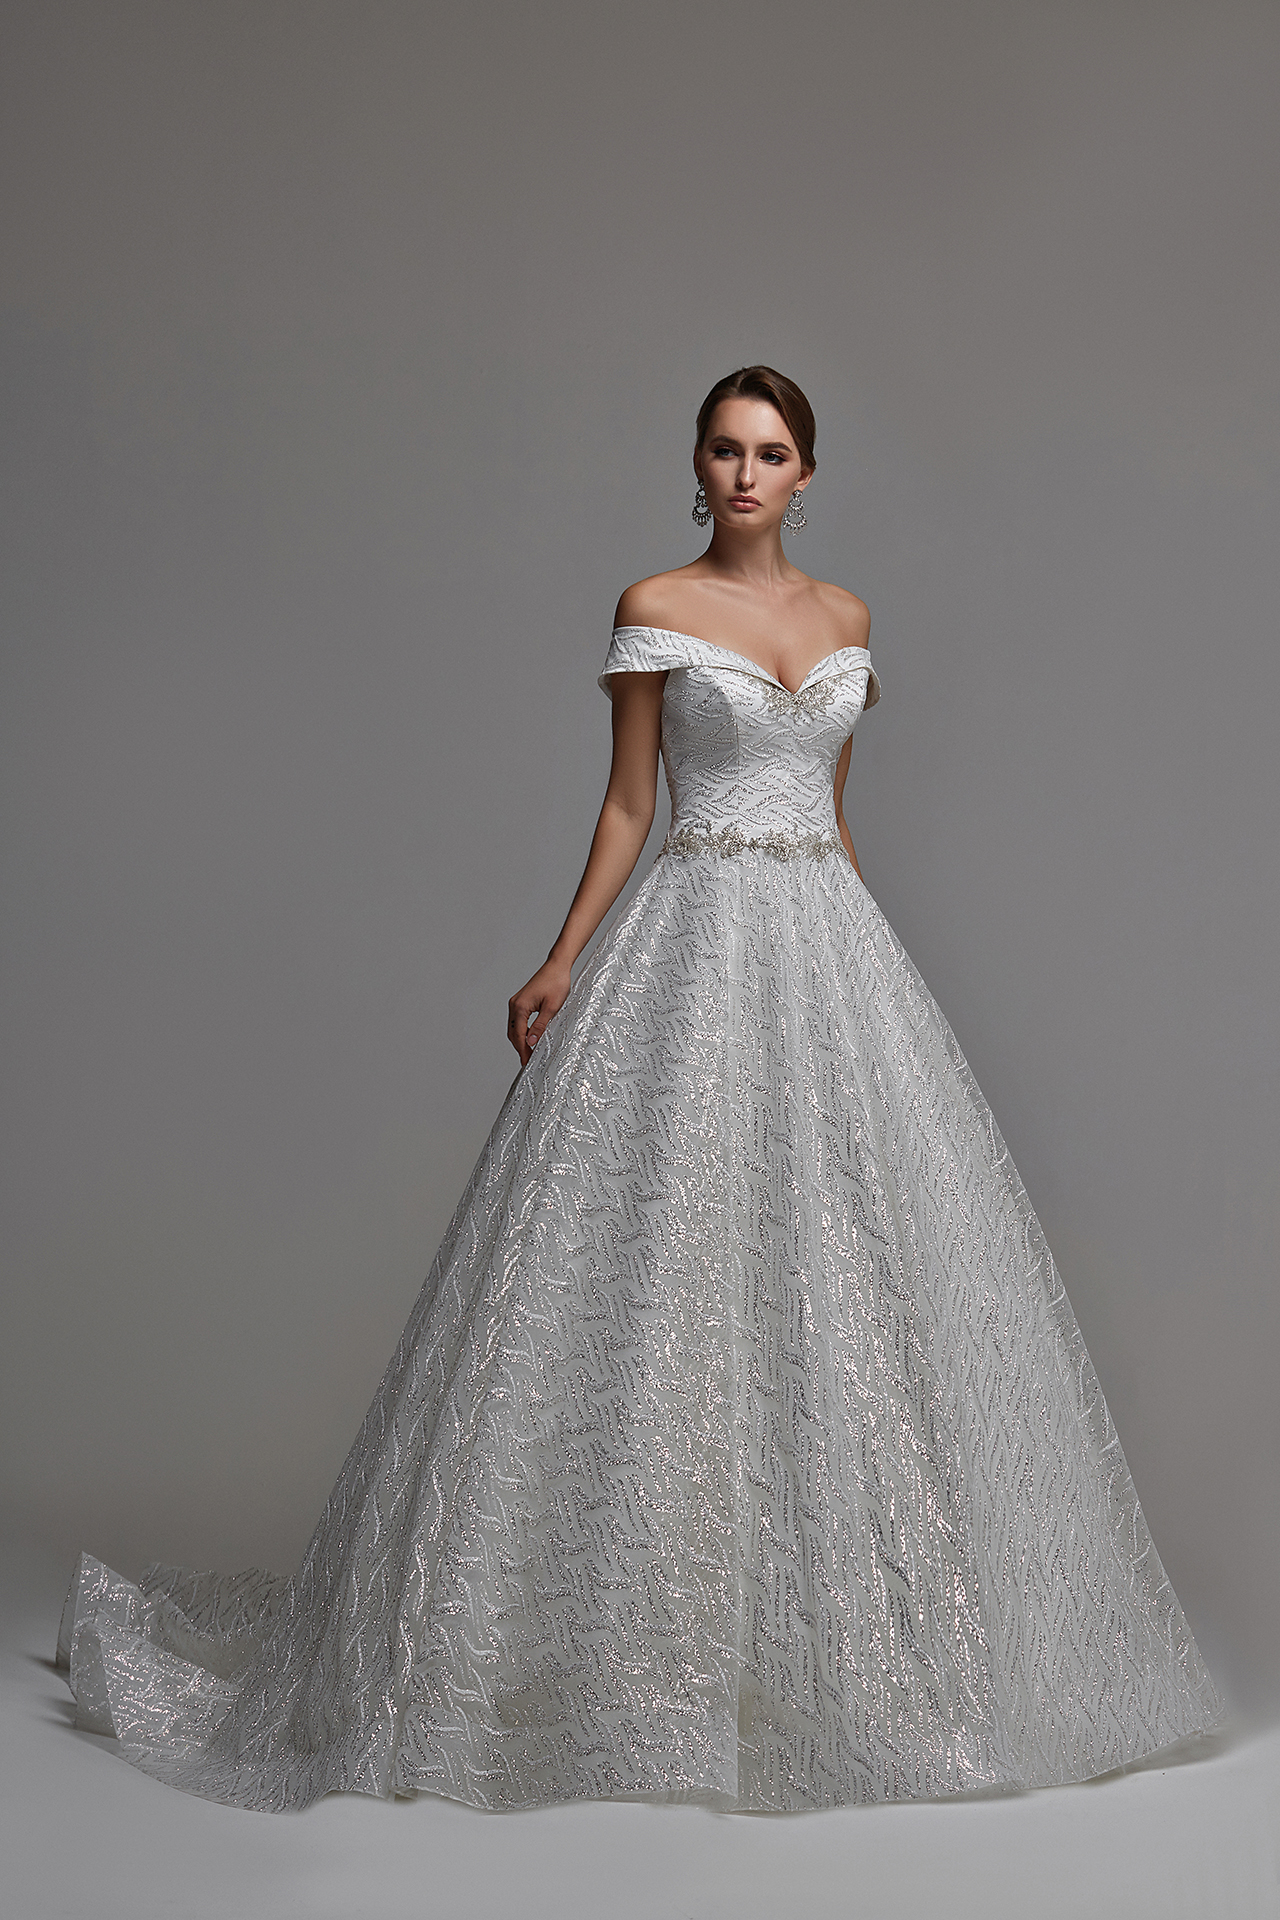 Buy Online Wedding Dress Nicole Princess Ball Gown Off The